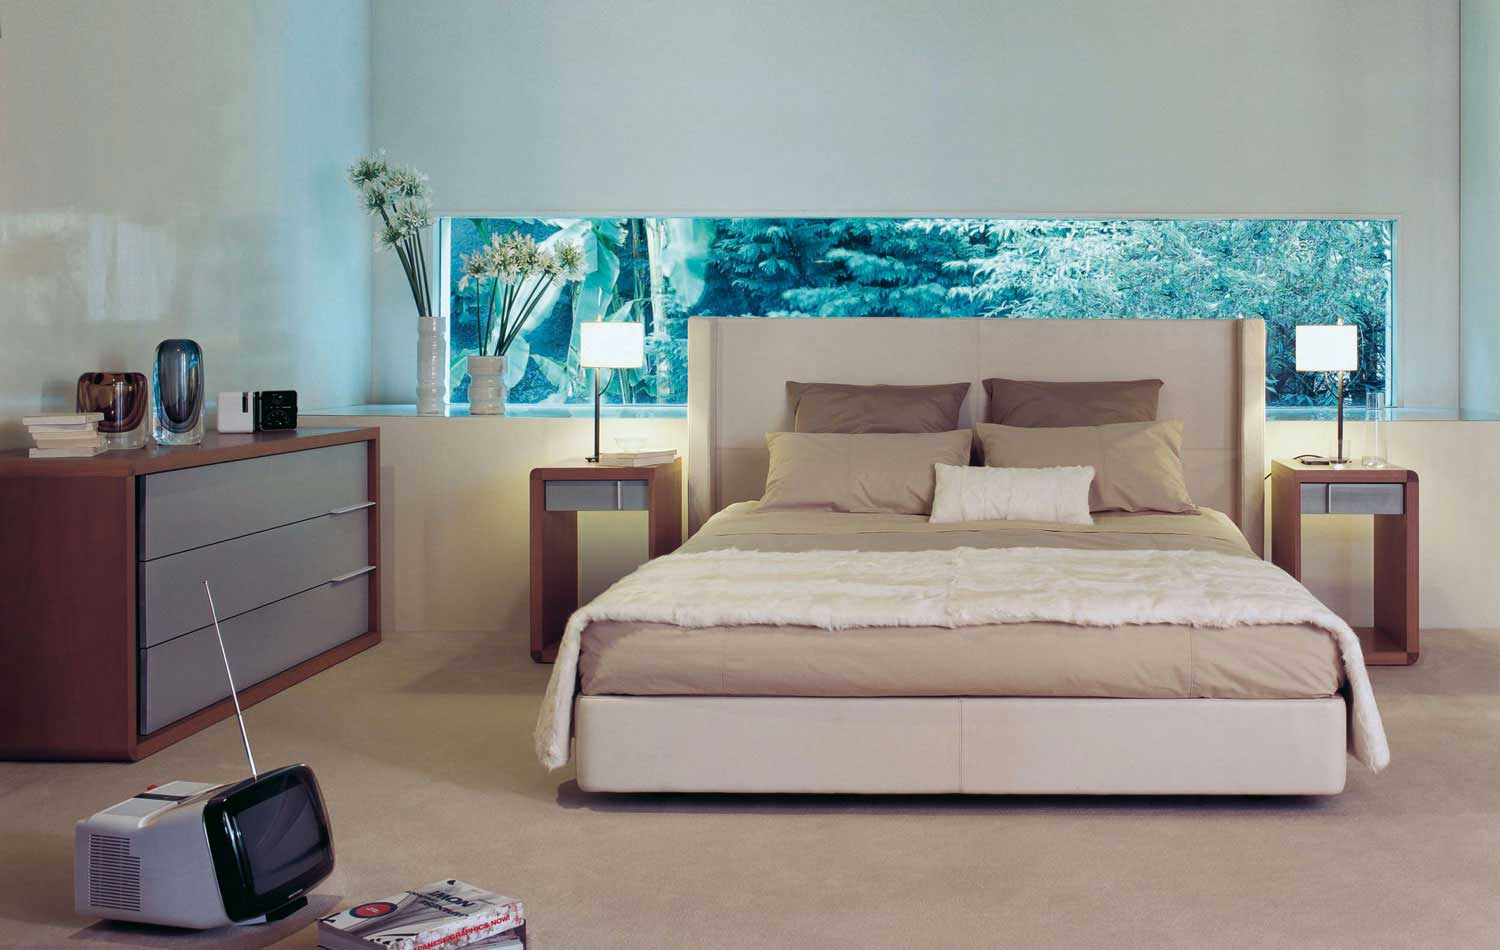 Fish aquarium bed frame - Fish Aquarium Bed Frame